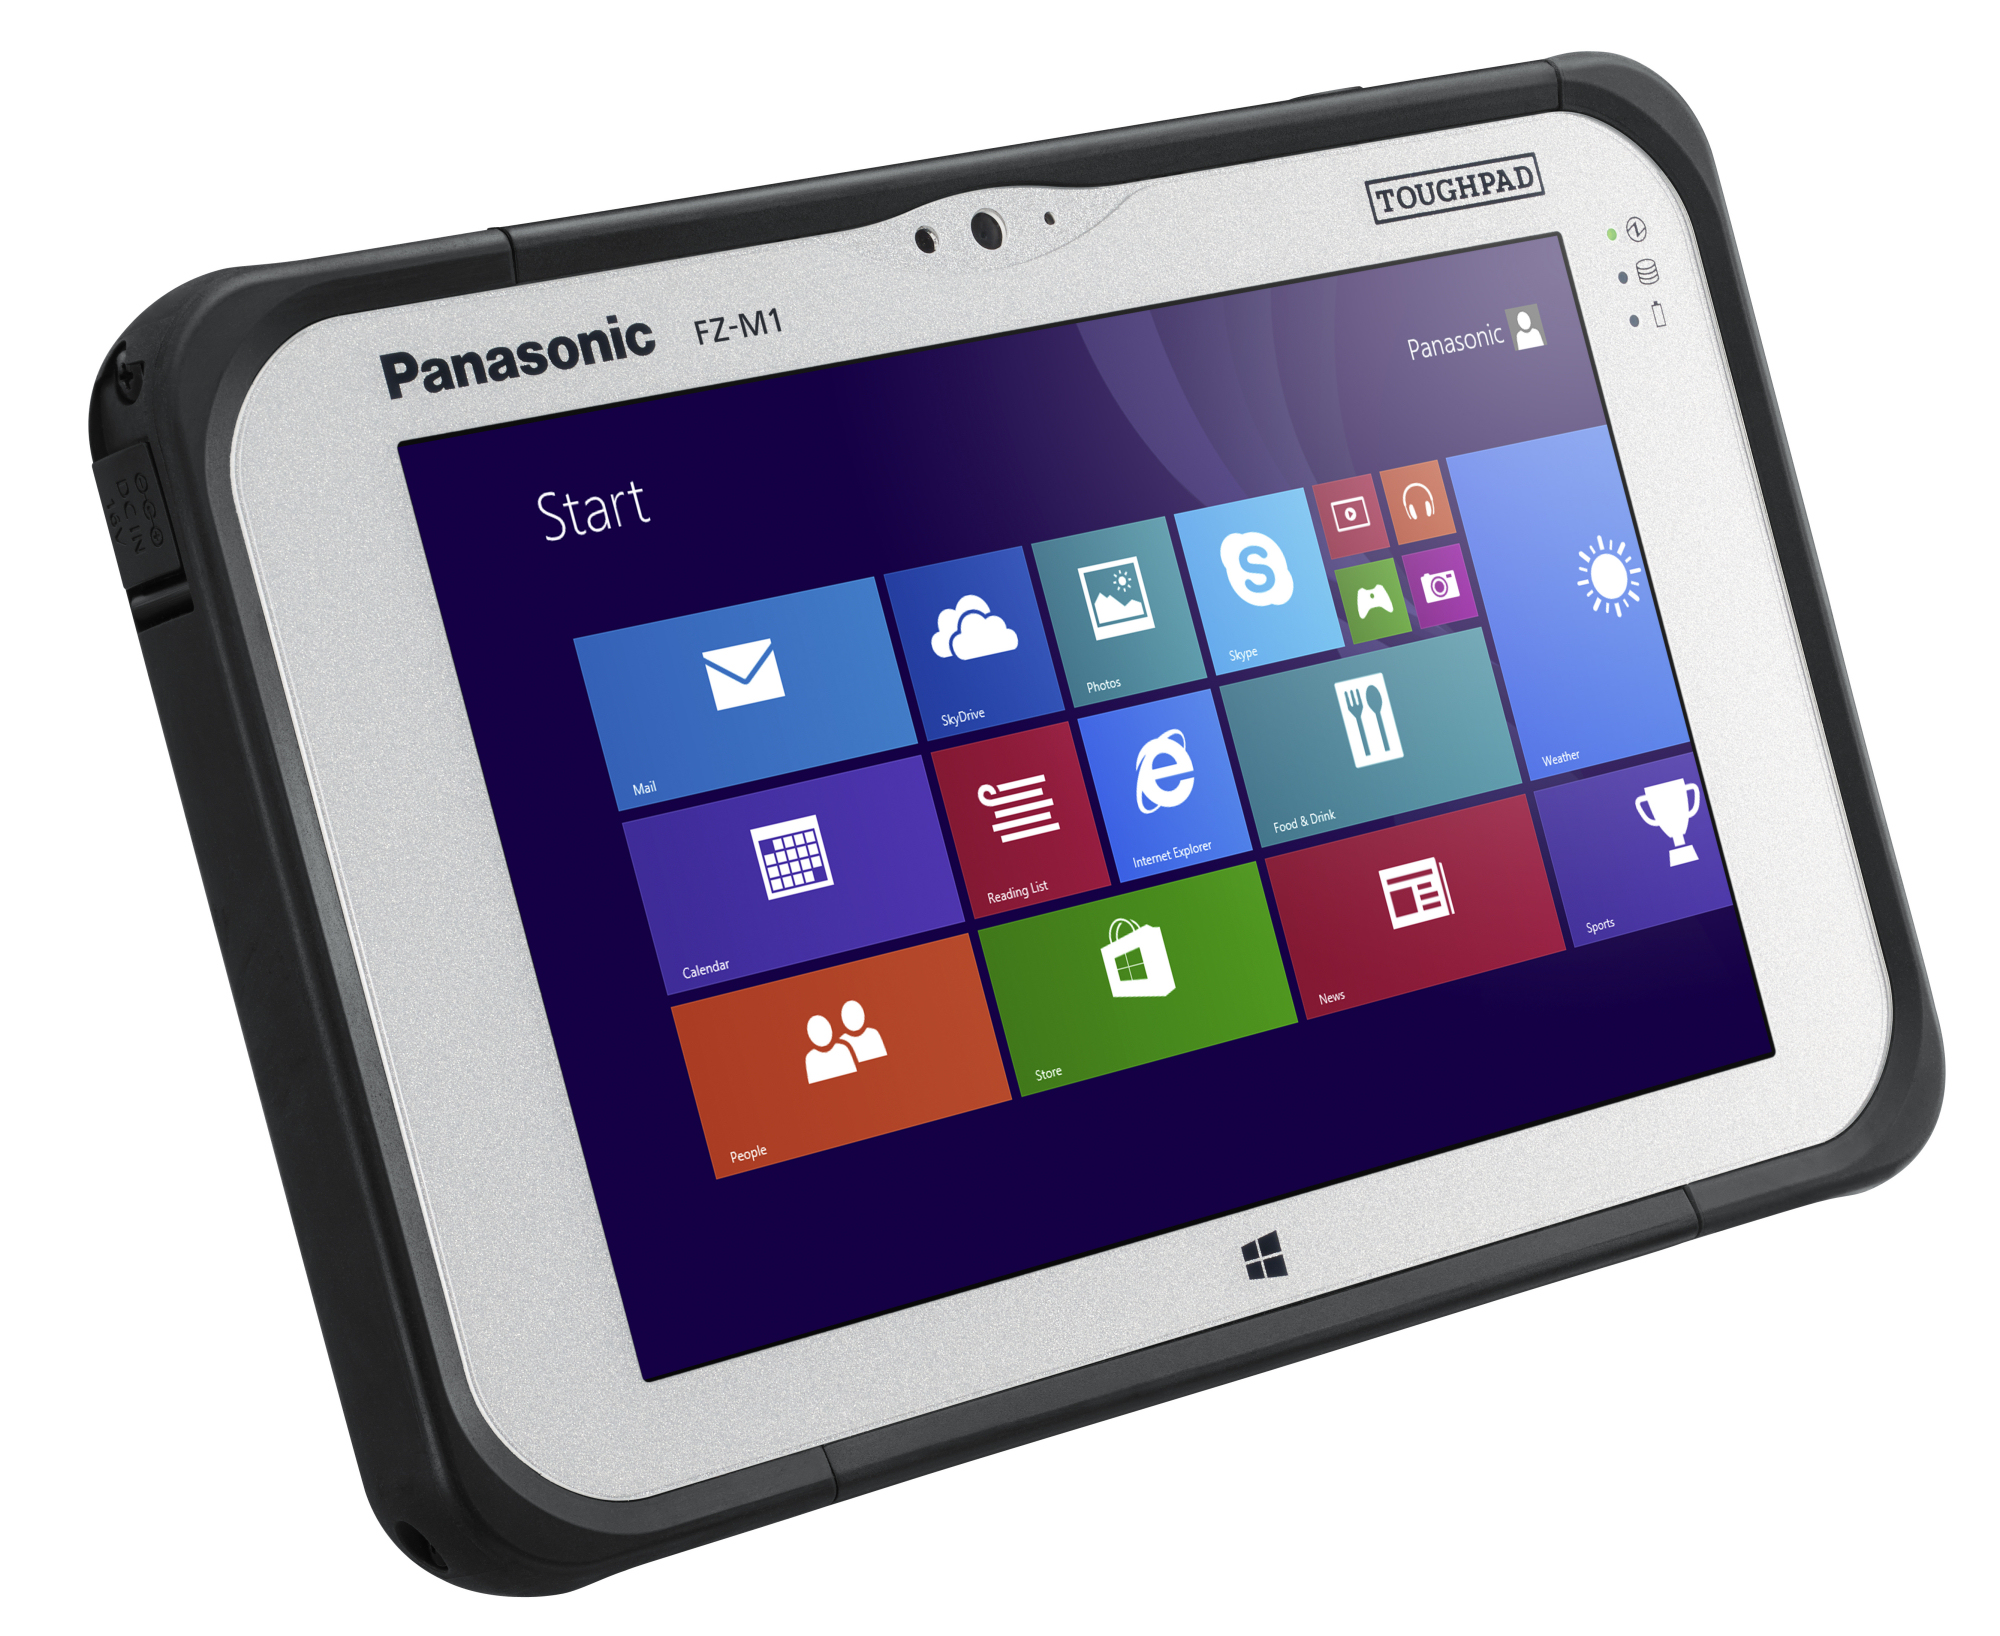 Panasonic Toughpad Fz M1 Tablet Review Notebookcheck Net